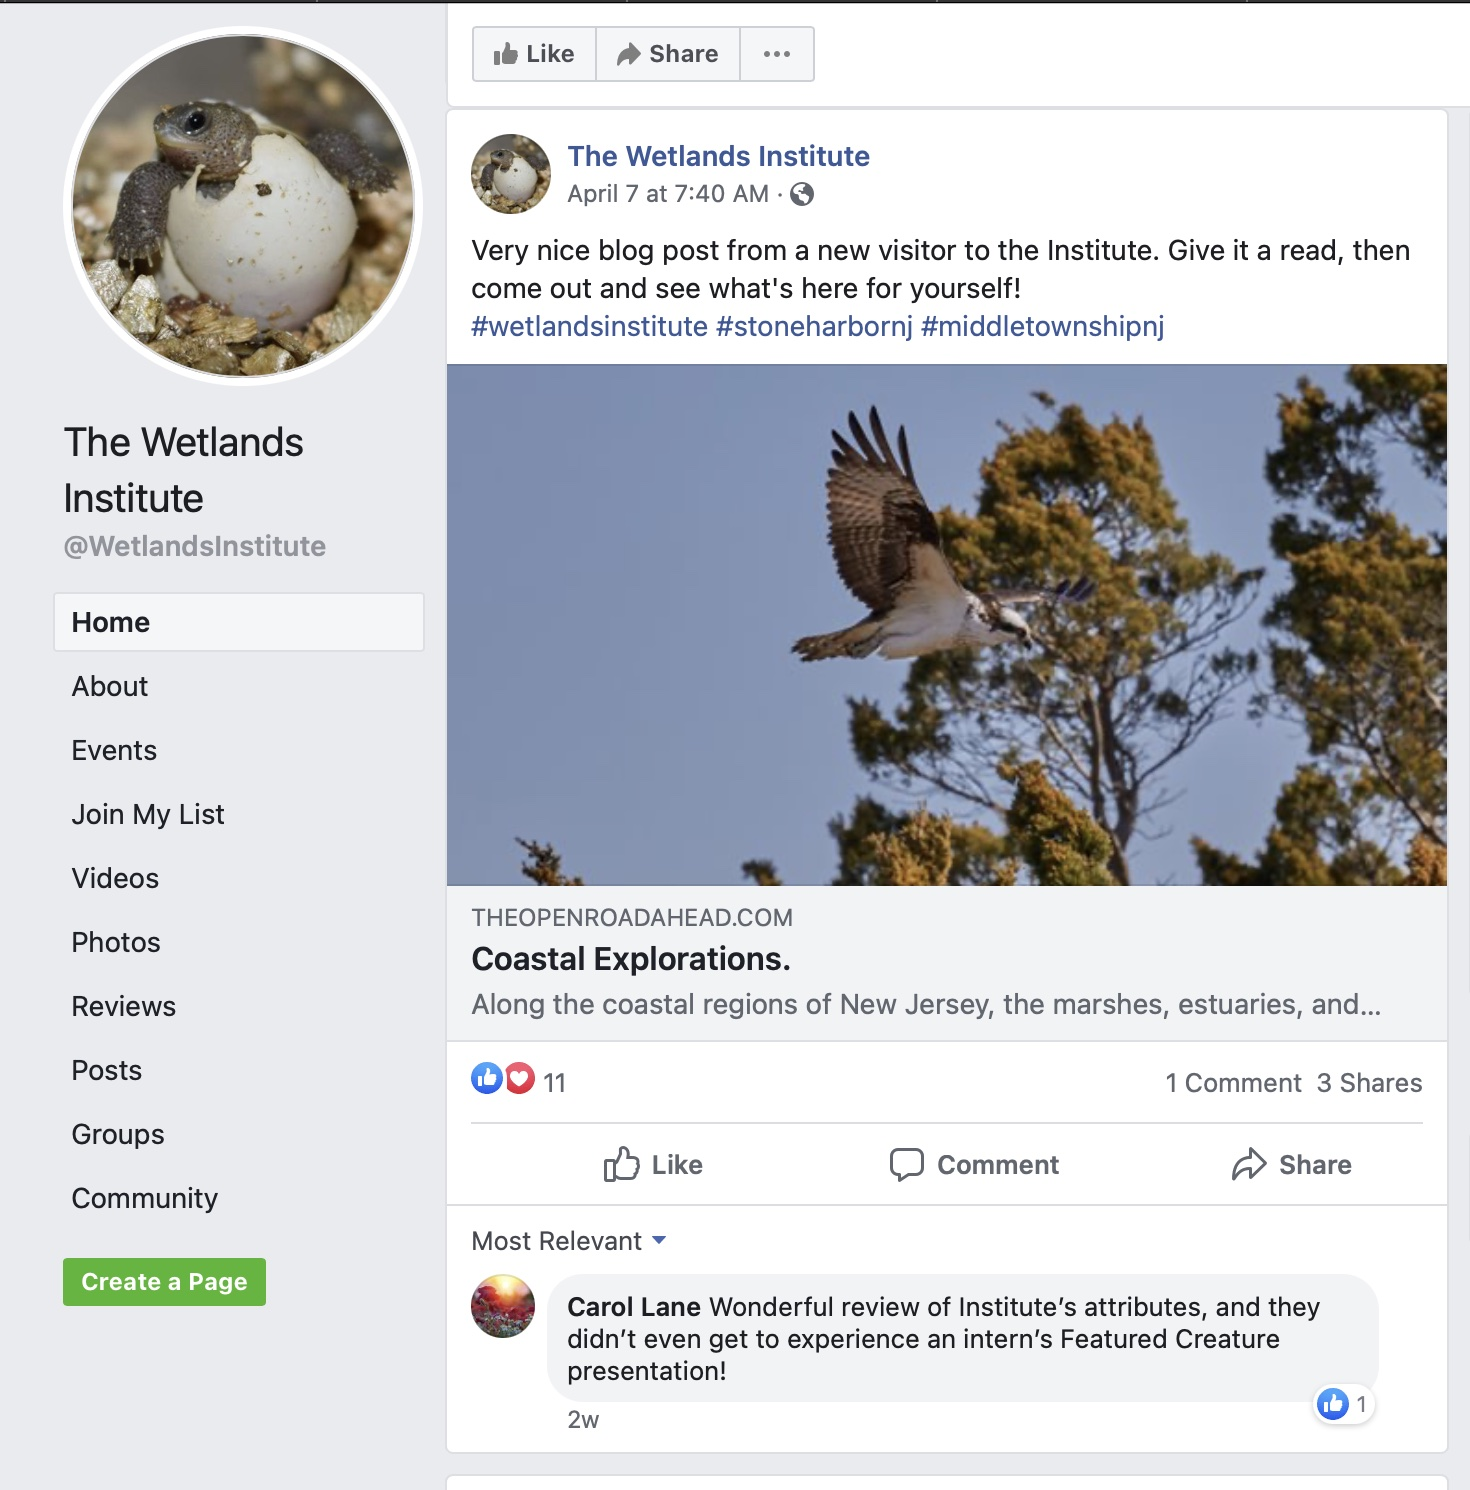 Screenshot of Facebook page showing post.